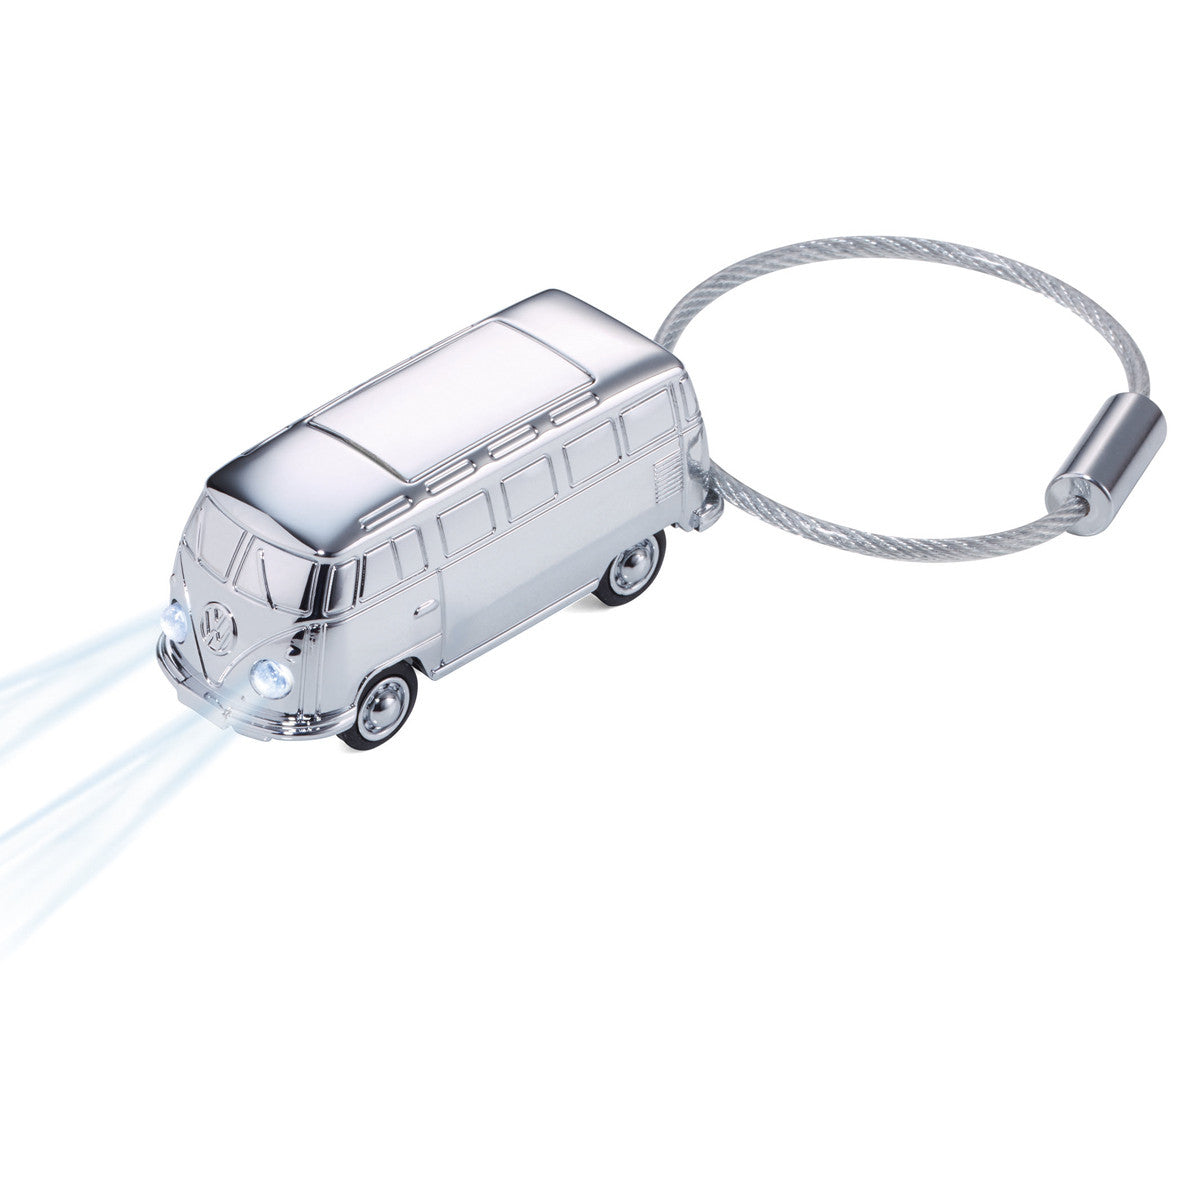 Troika Vw Gifts Officially Licensed Merchandise Lightupcircuitboardkeychain Light Bulli Camper Van Led Keychain Chrome With Nail Friendly Wire Loop